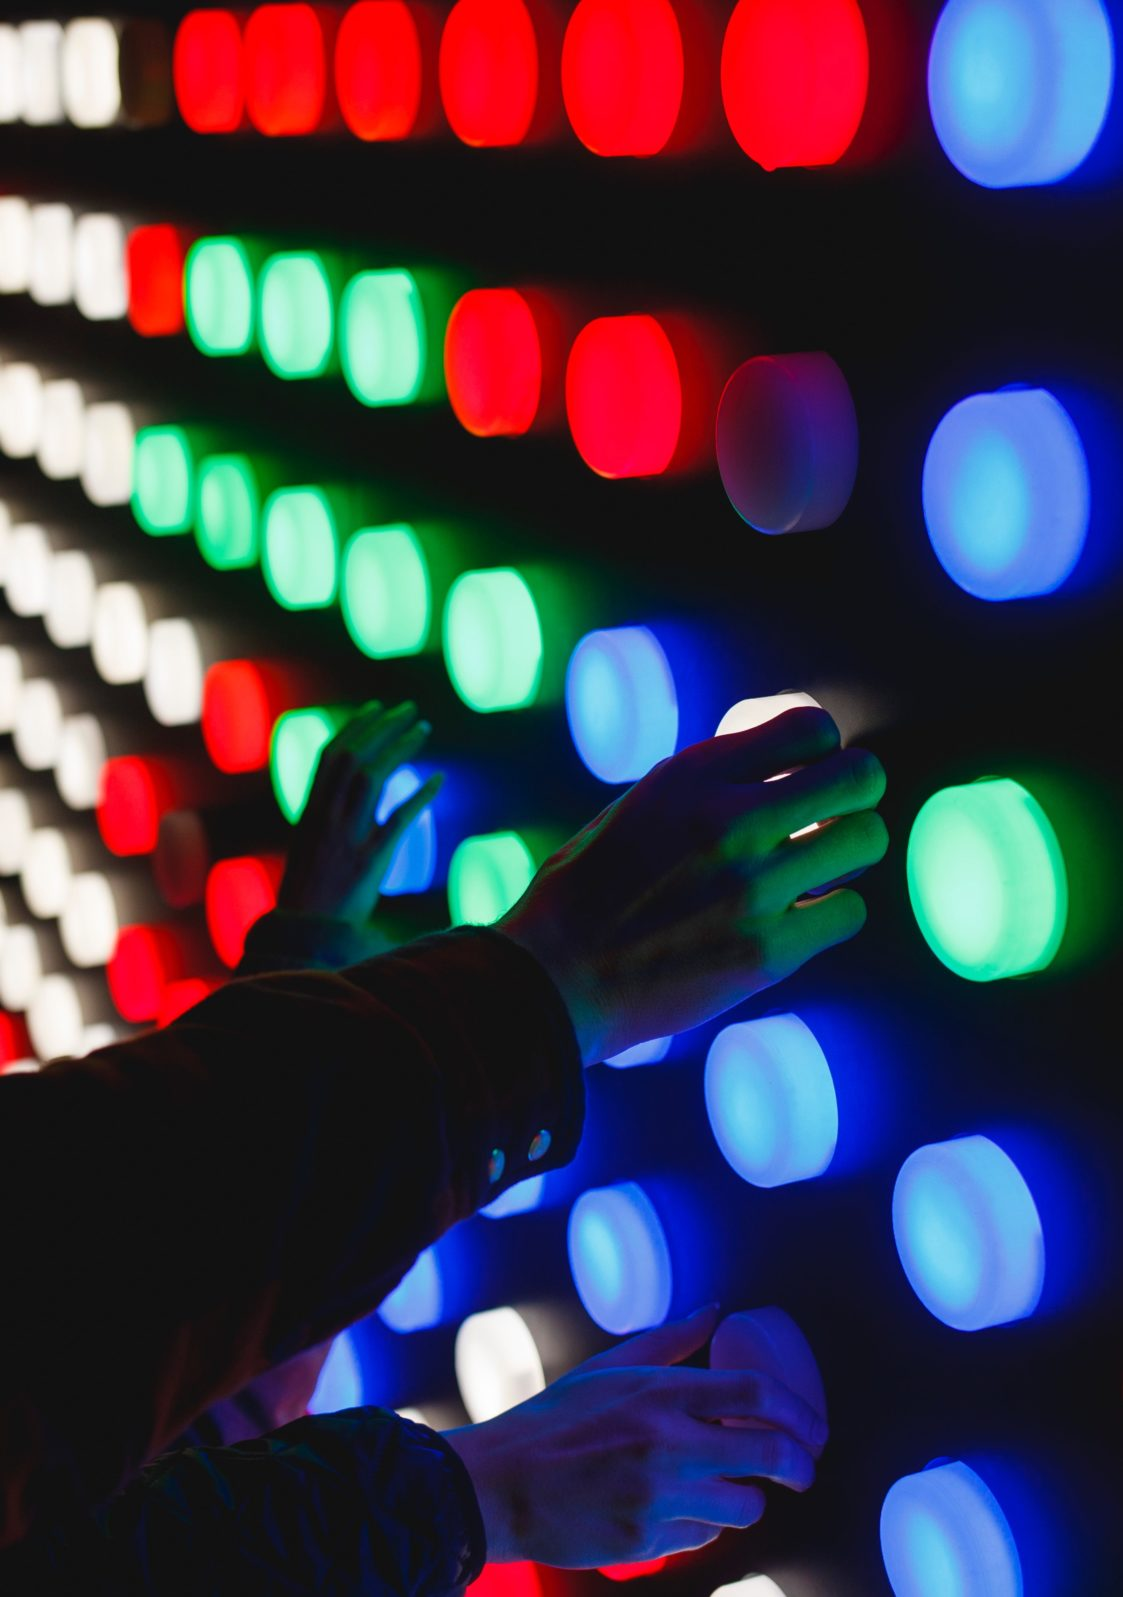 Hands selecting colored lights